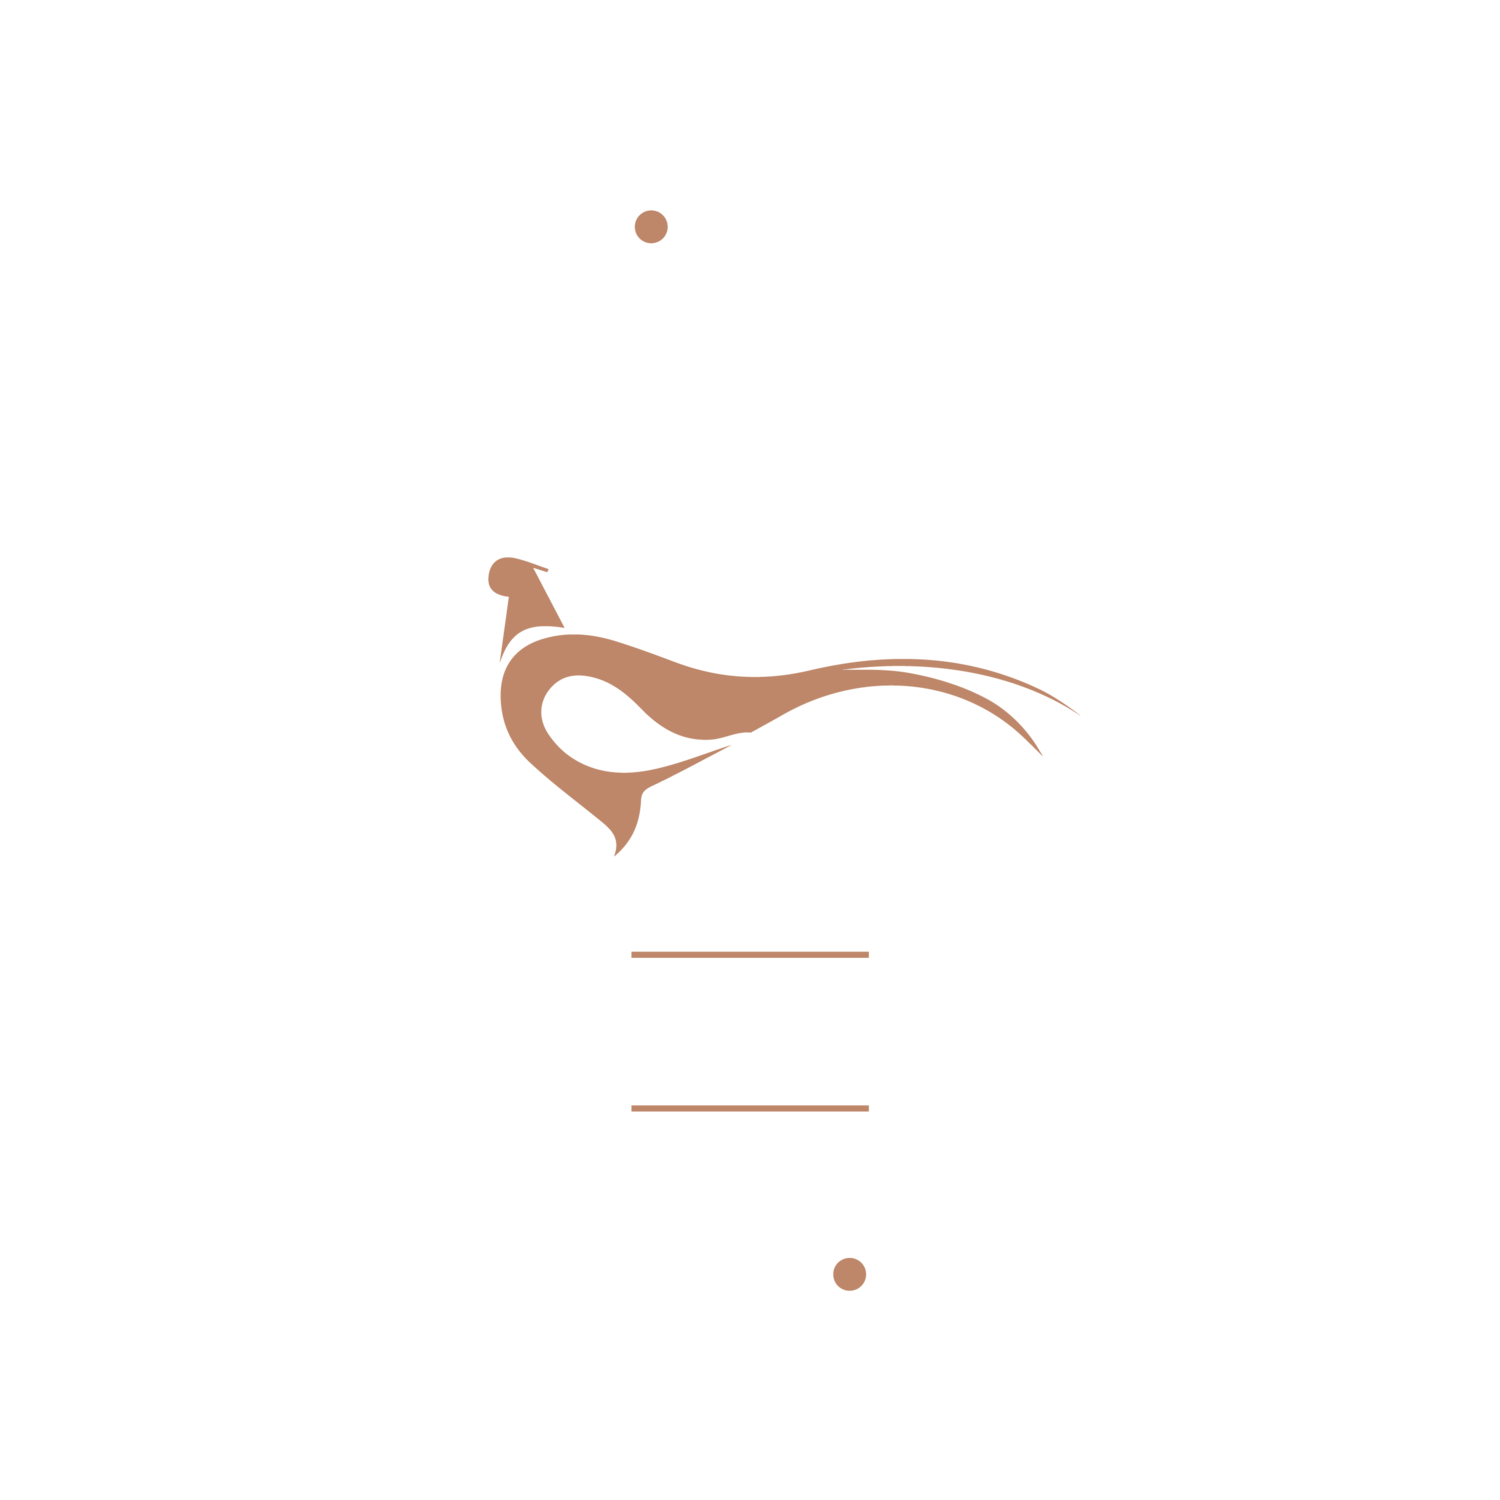 Michels Catering & Events